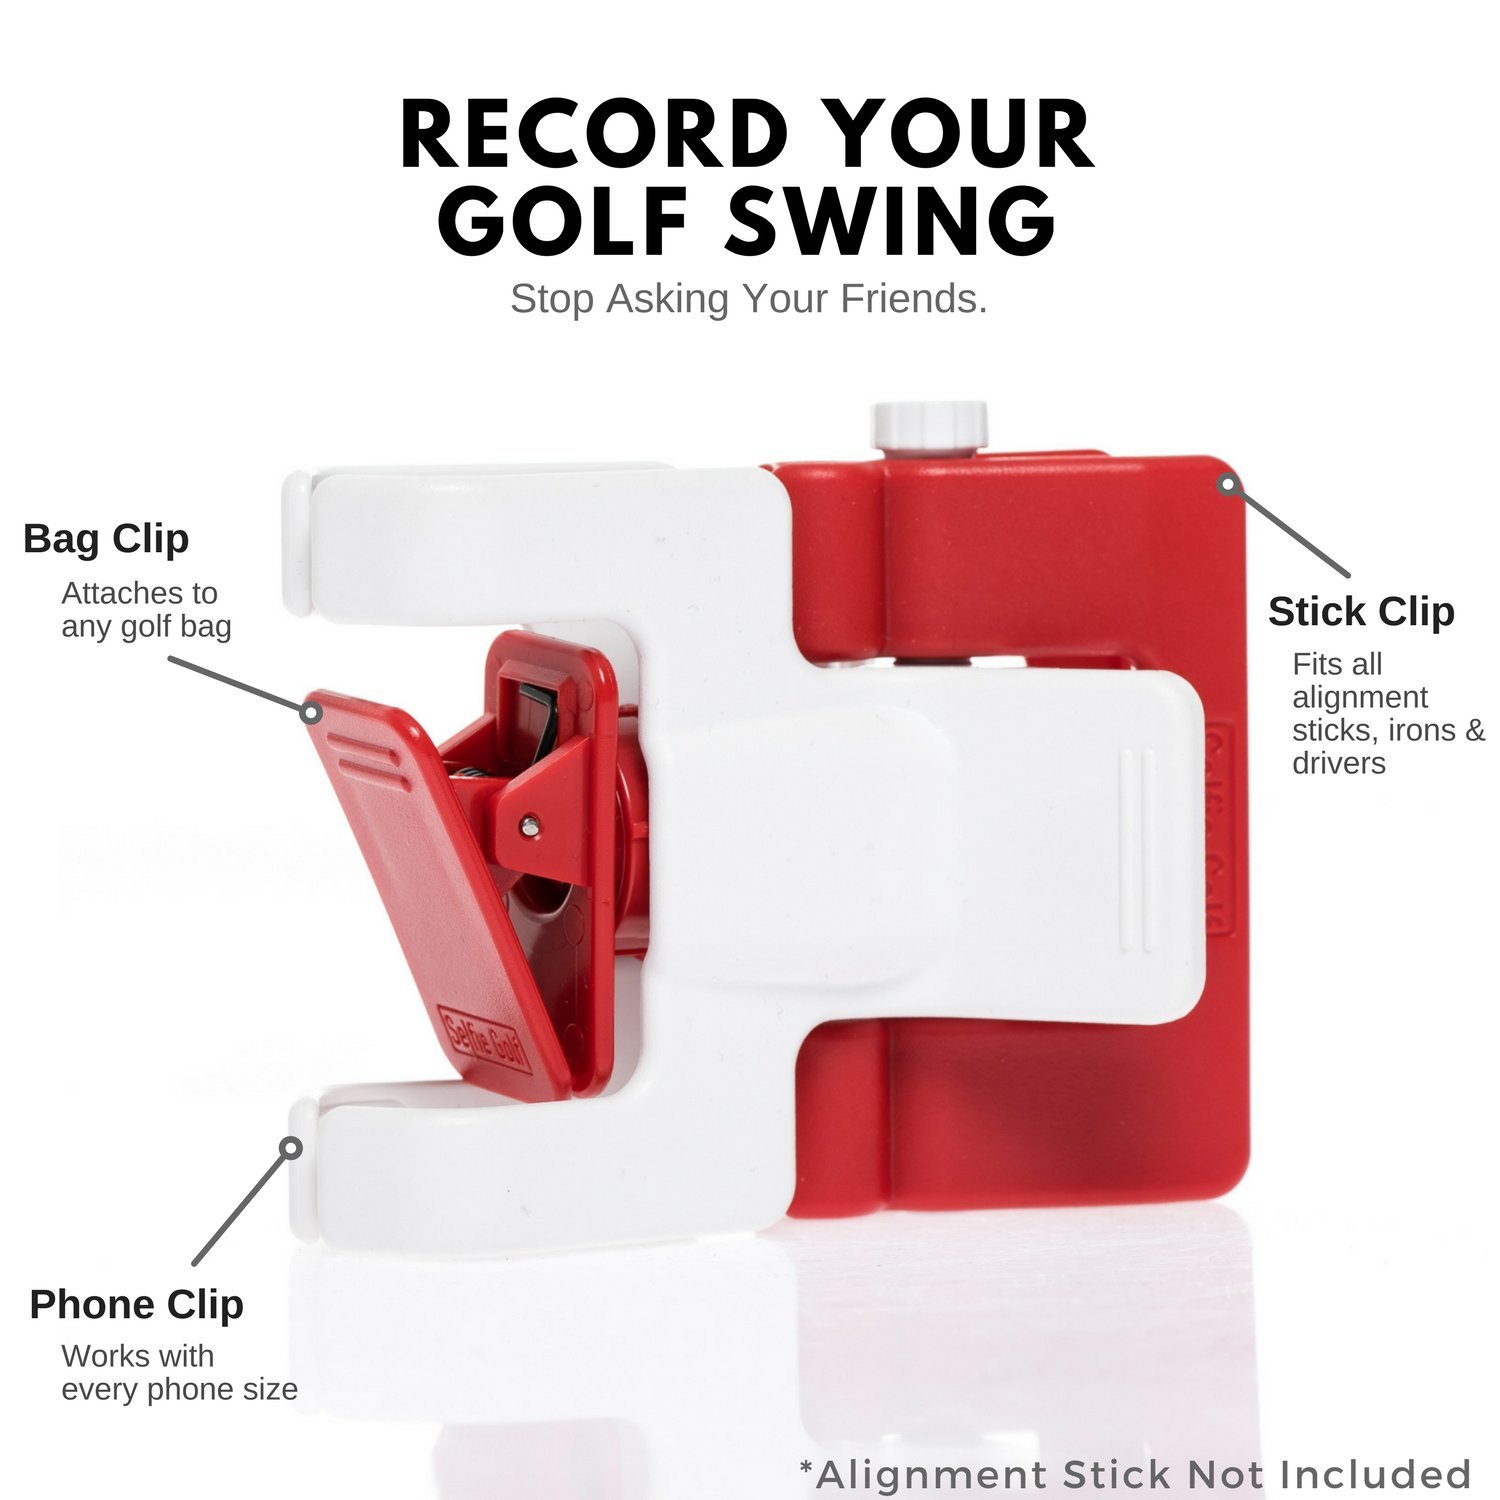 SelfieGolf Record Golf Swing - Cell Phone Clip Holder and Training Aid by TM - Golf Accessories | The Winner of The PGA Best of 2017 | Compatible with Any Smart Phone (Red/White) by Selfie Golf (Image #3)